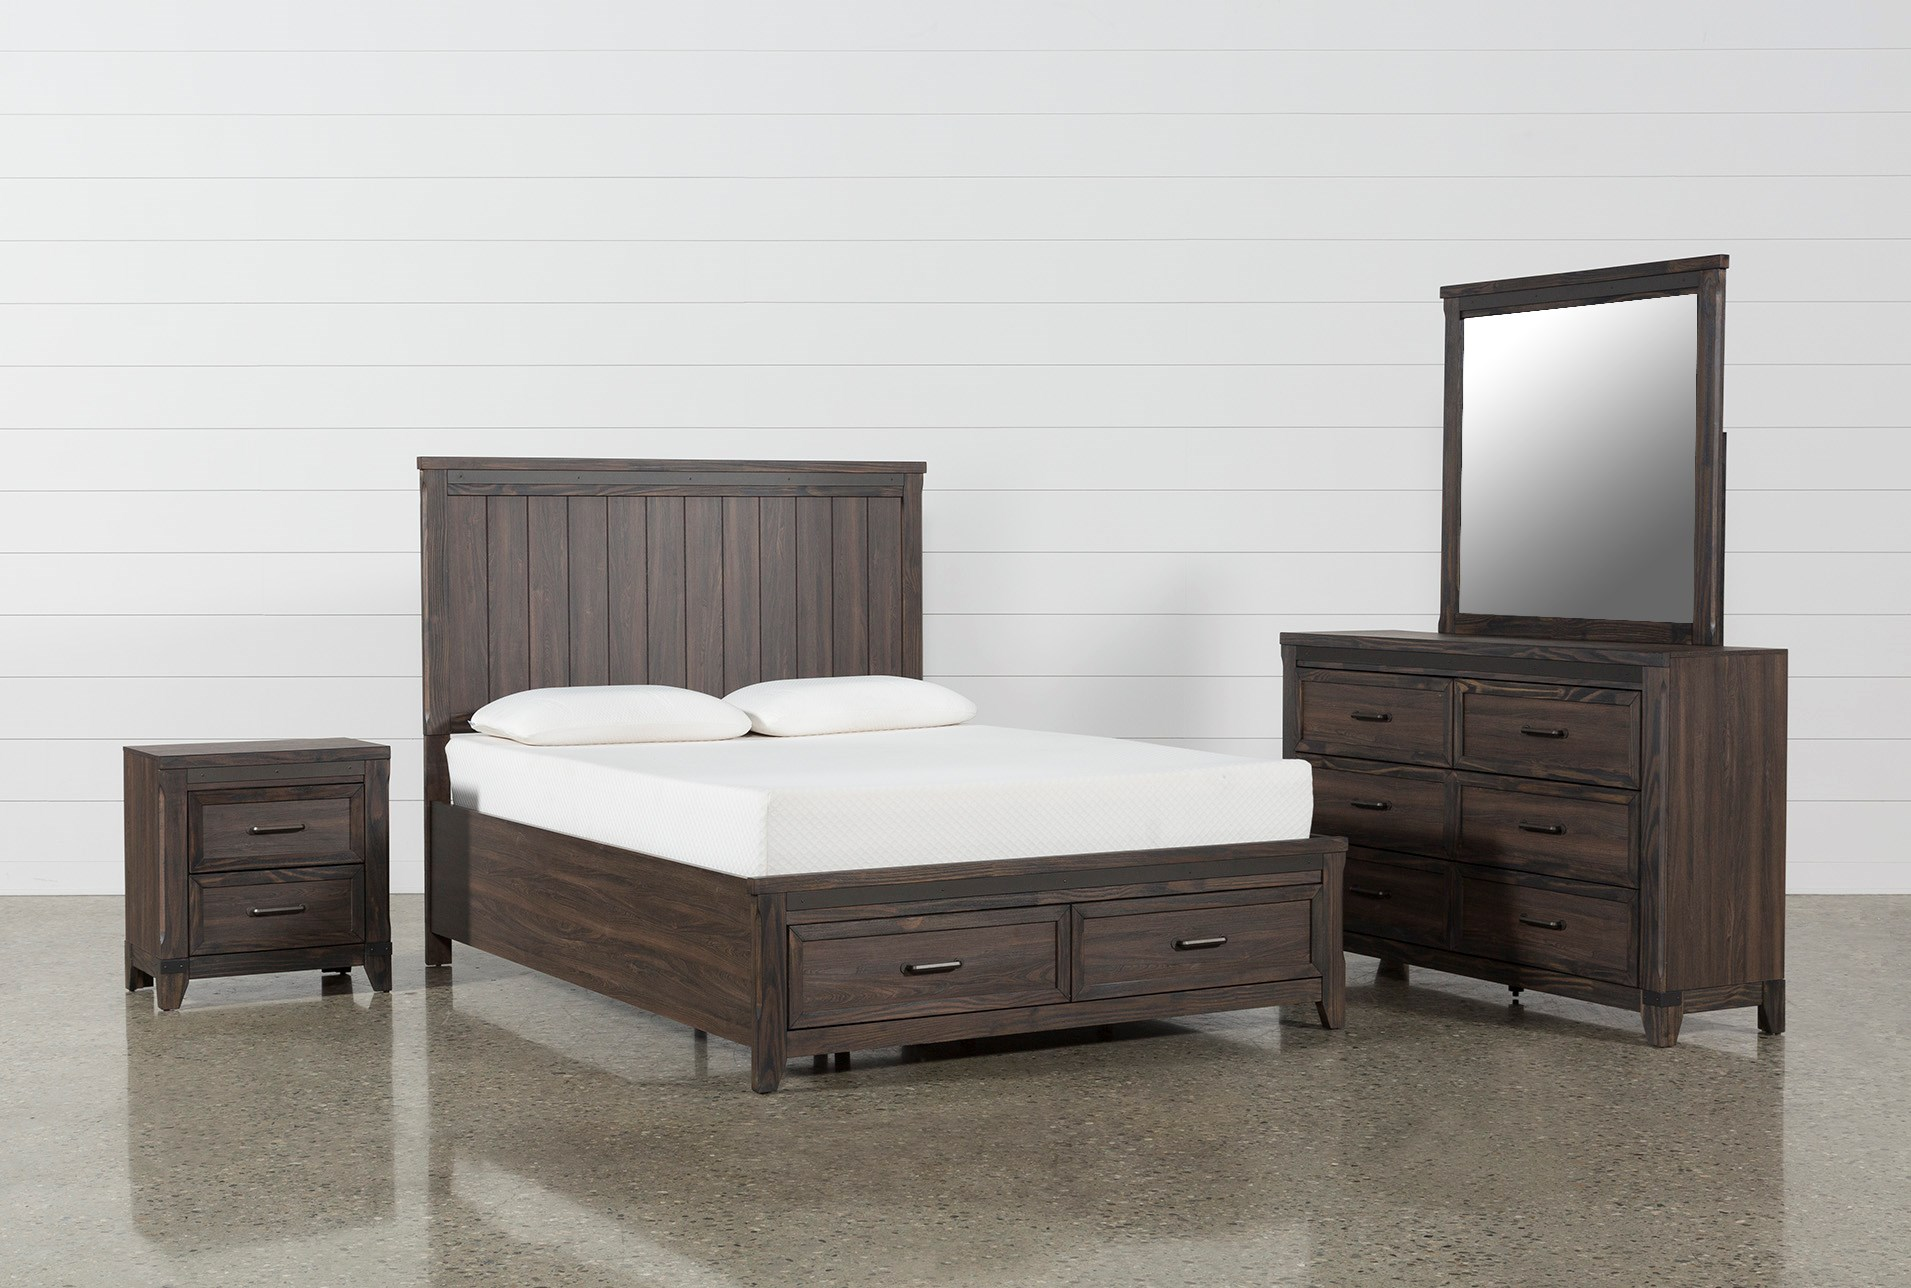 hendricks 4 piece eastern king bedroom set living spaces 14688 | 230082 grey wood bedroom set 1 w 1911 h 1288 mode pad